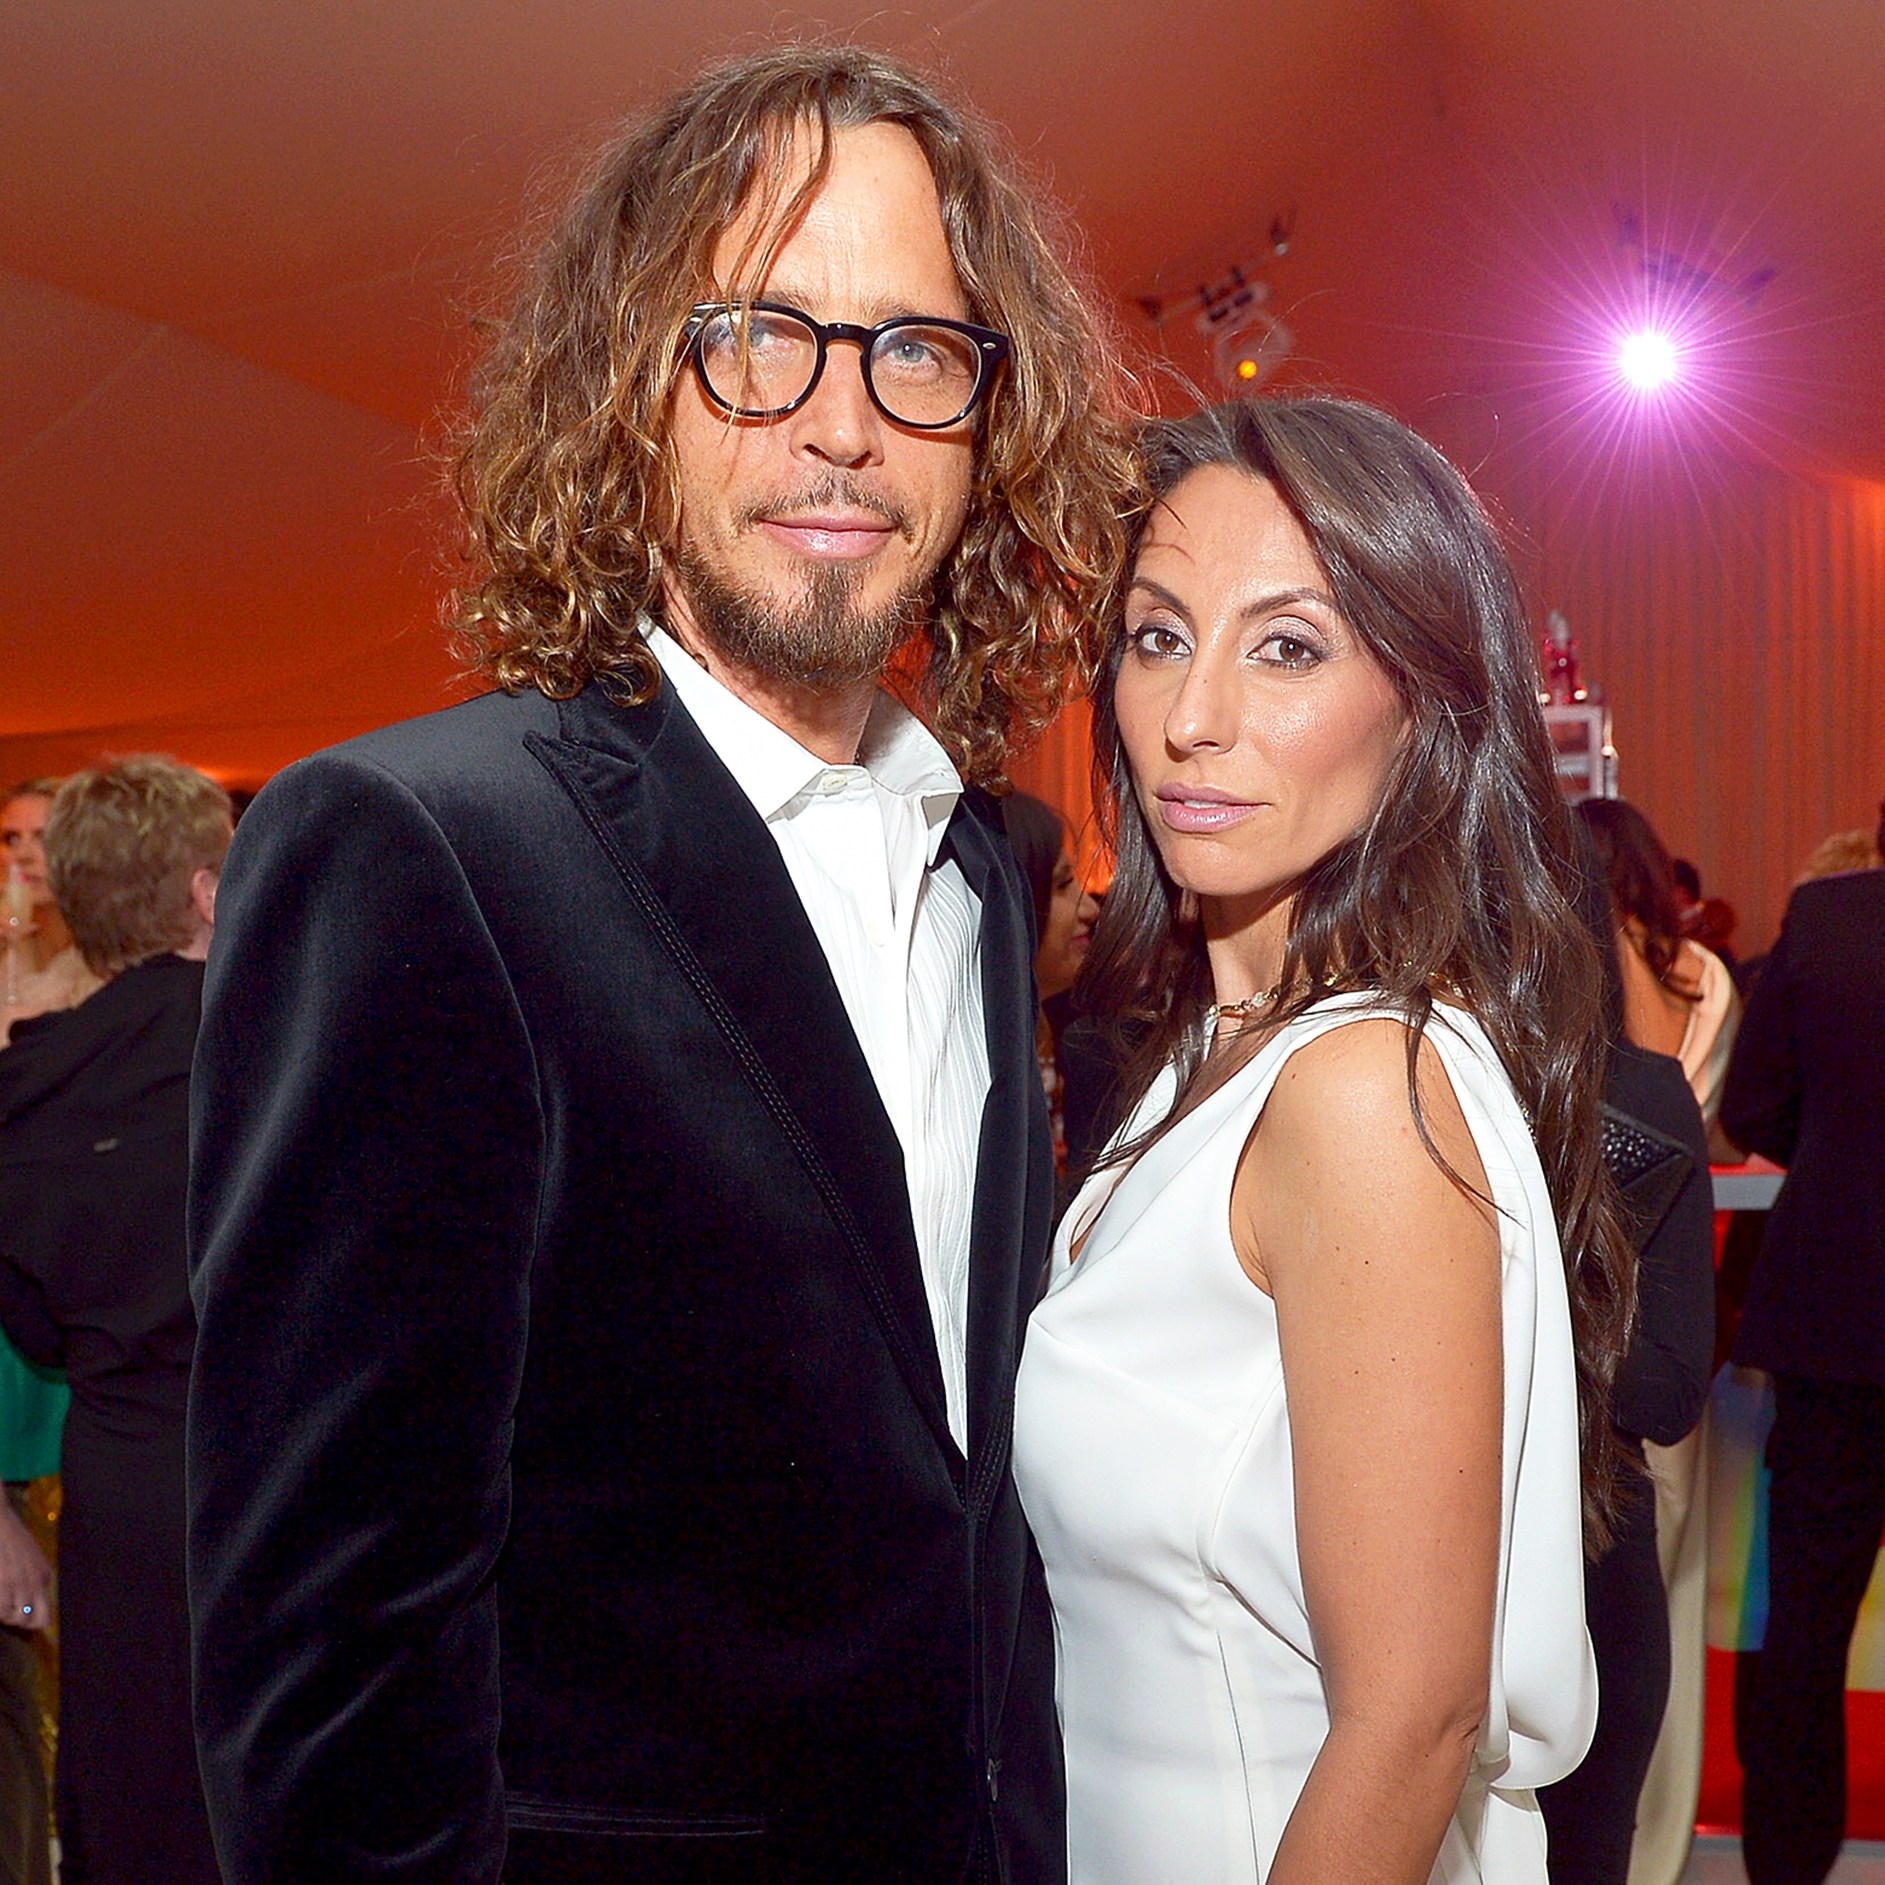 Chris Cornell and Vicky attend Neuro at 21st Annual Elton John AIDS Foundation Academy Awards Viewing Party at West Hollywood Park in West Hollywood, California.